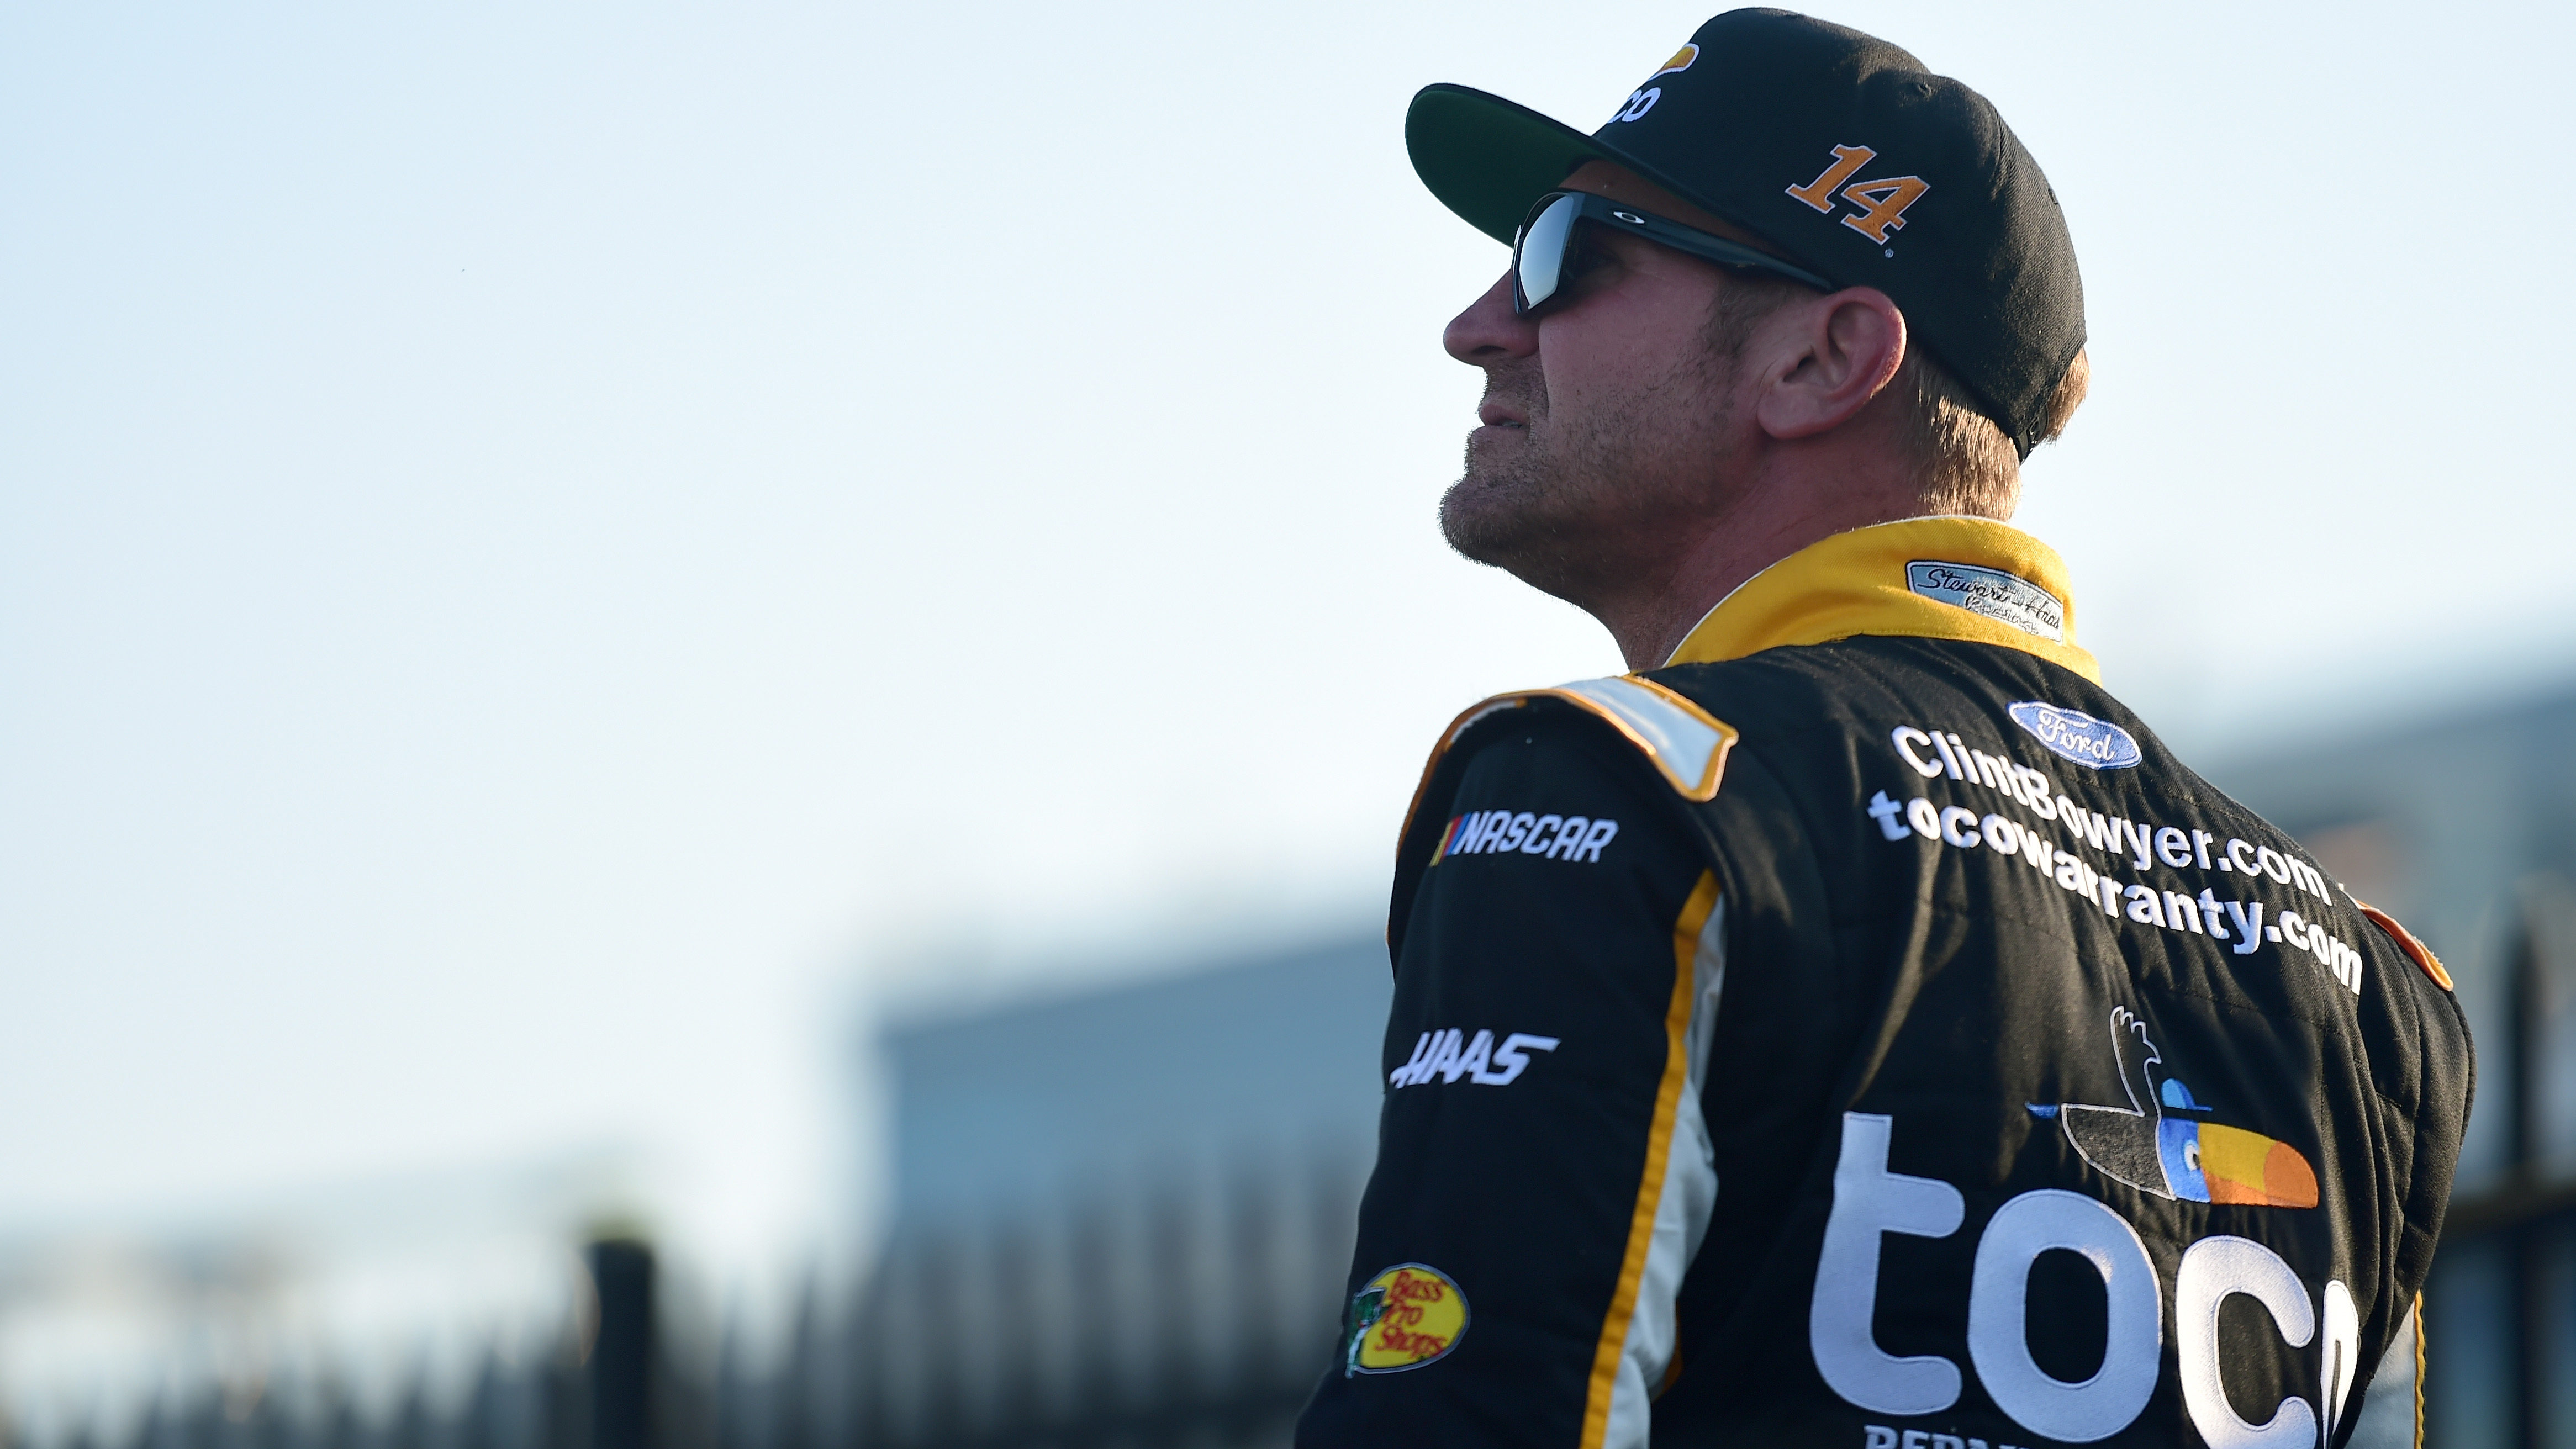 Ryan Newman, Clint Bowyer explain what led to fight at NASCAR All-Star Race – NBC Sports – Misc.